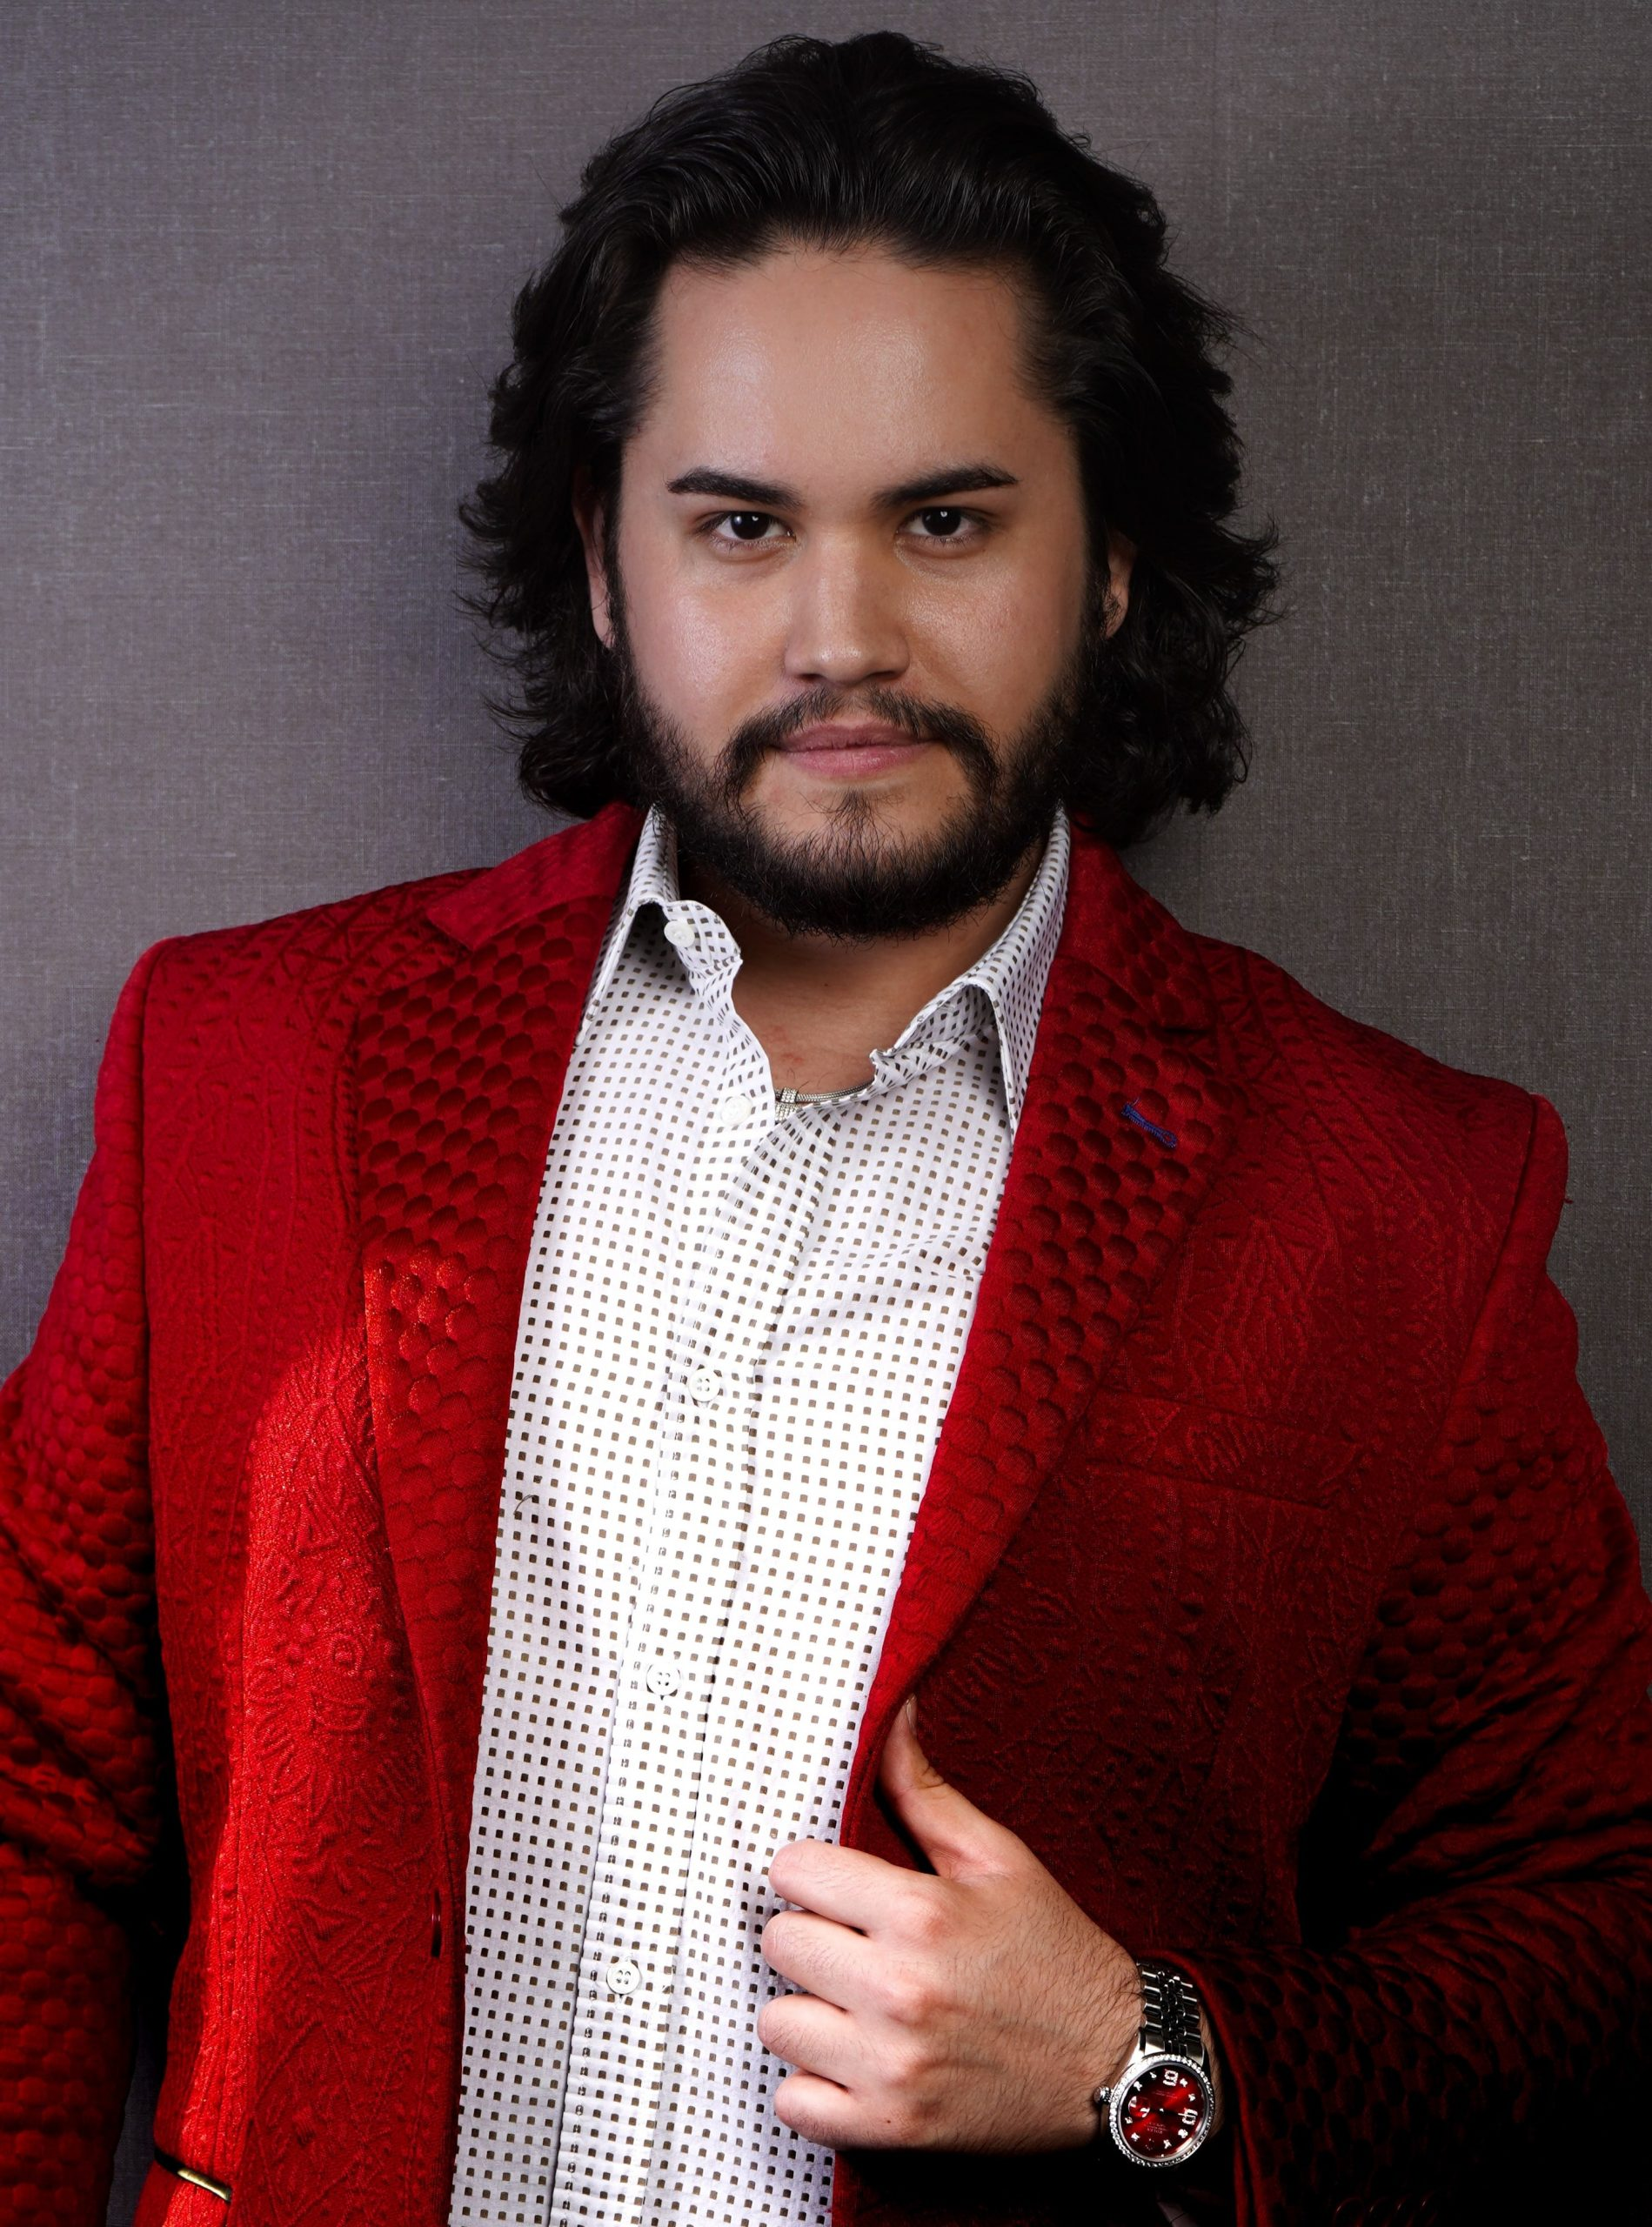 Roman Alexander Wellington in red couture jacket Copy scaled